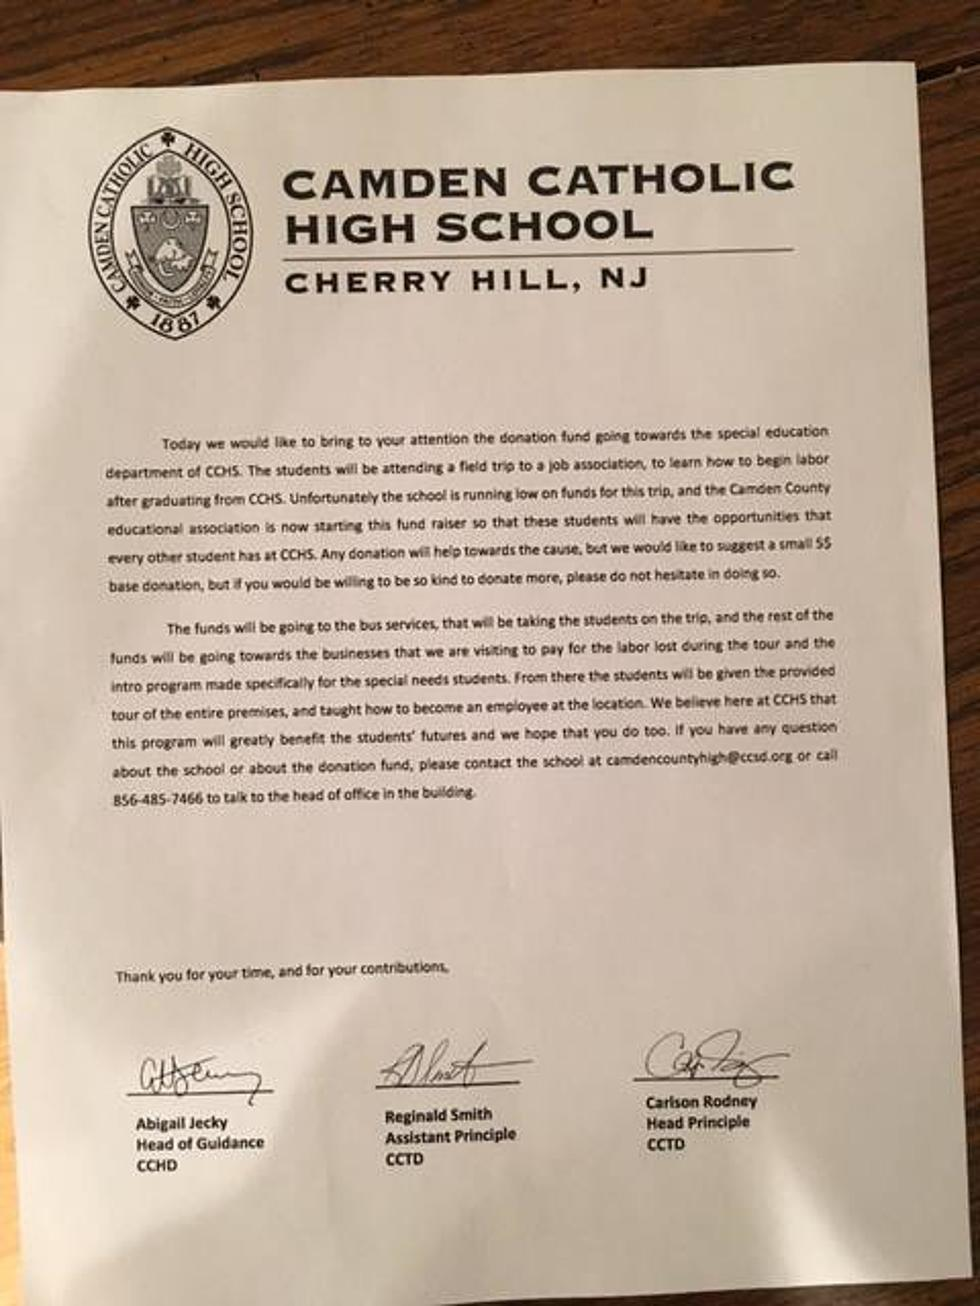 Cops investigating fake fundraising letter for Camden Catholic High